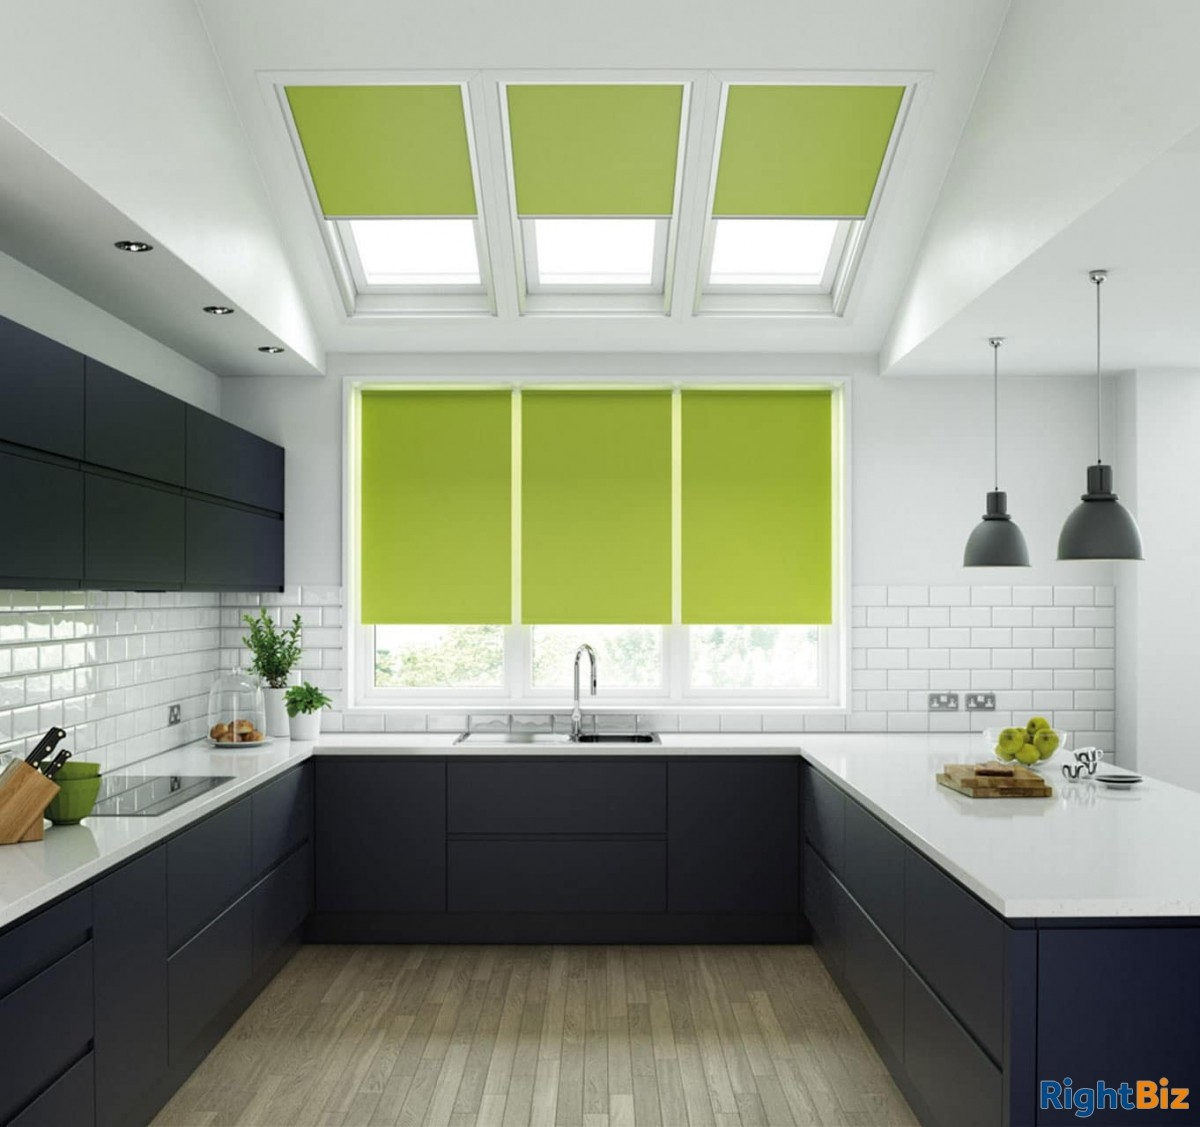 MADE-TO-MEASURE WINDOW SHUTTERS & BLINDS BUSINESS - Image 1